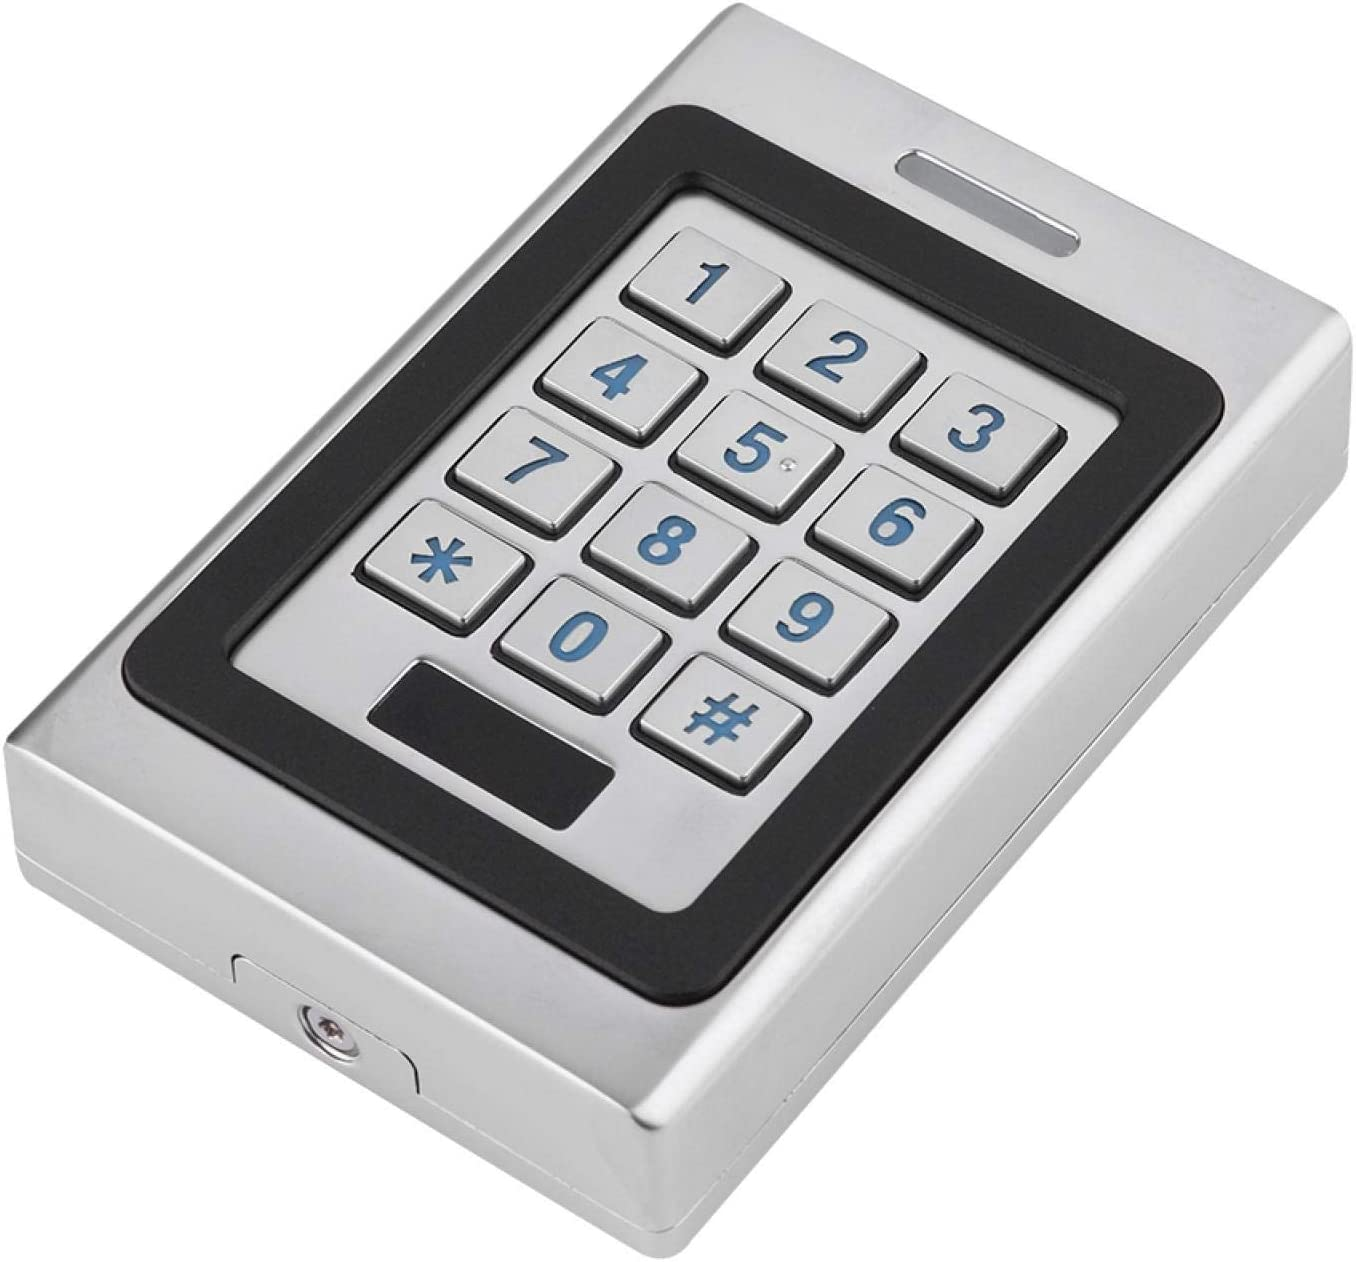 SALUTUYA Door Entry System Password Popular shop is the lowest price challenge Multi-Functional 2021 new Independent